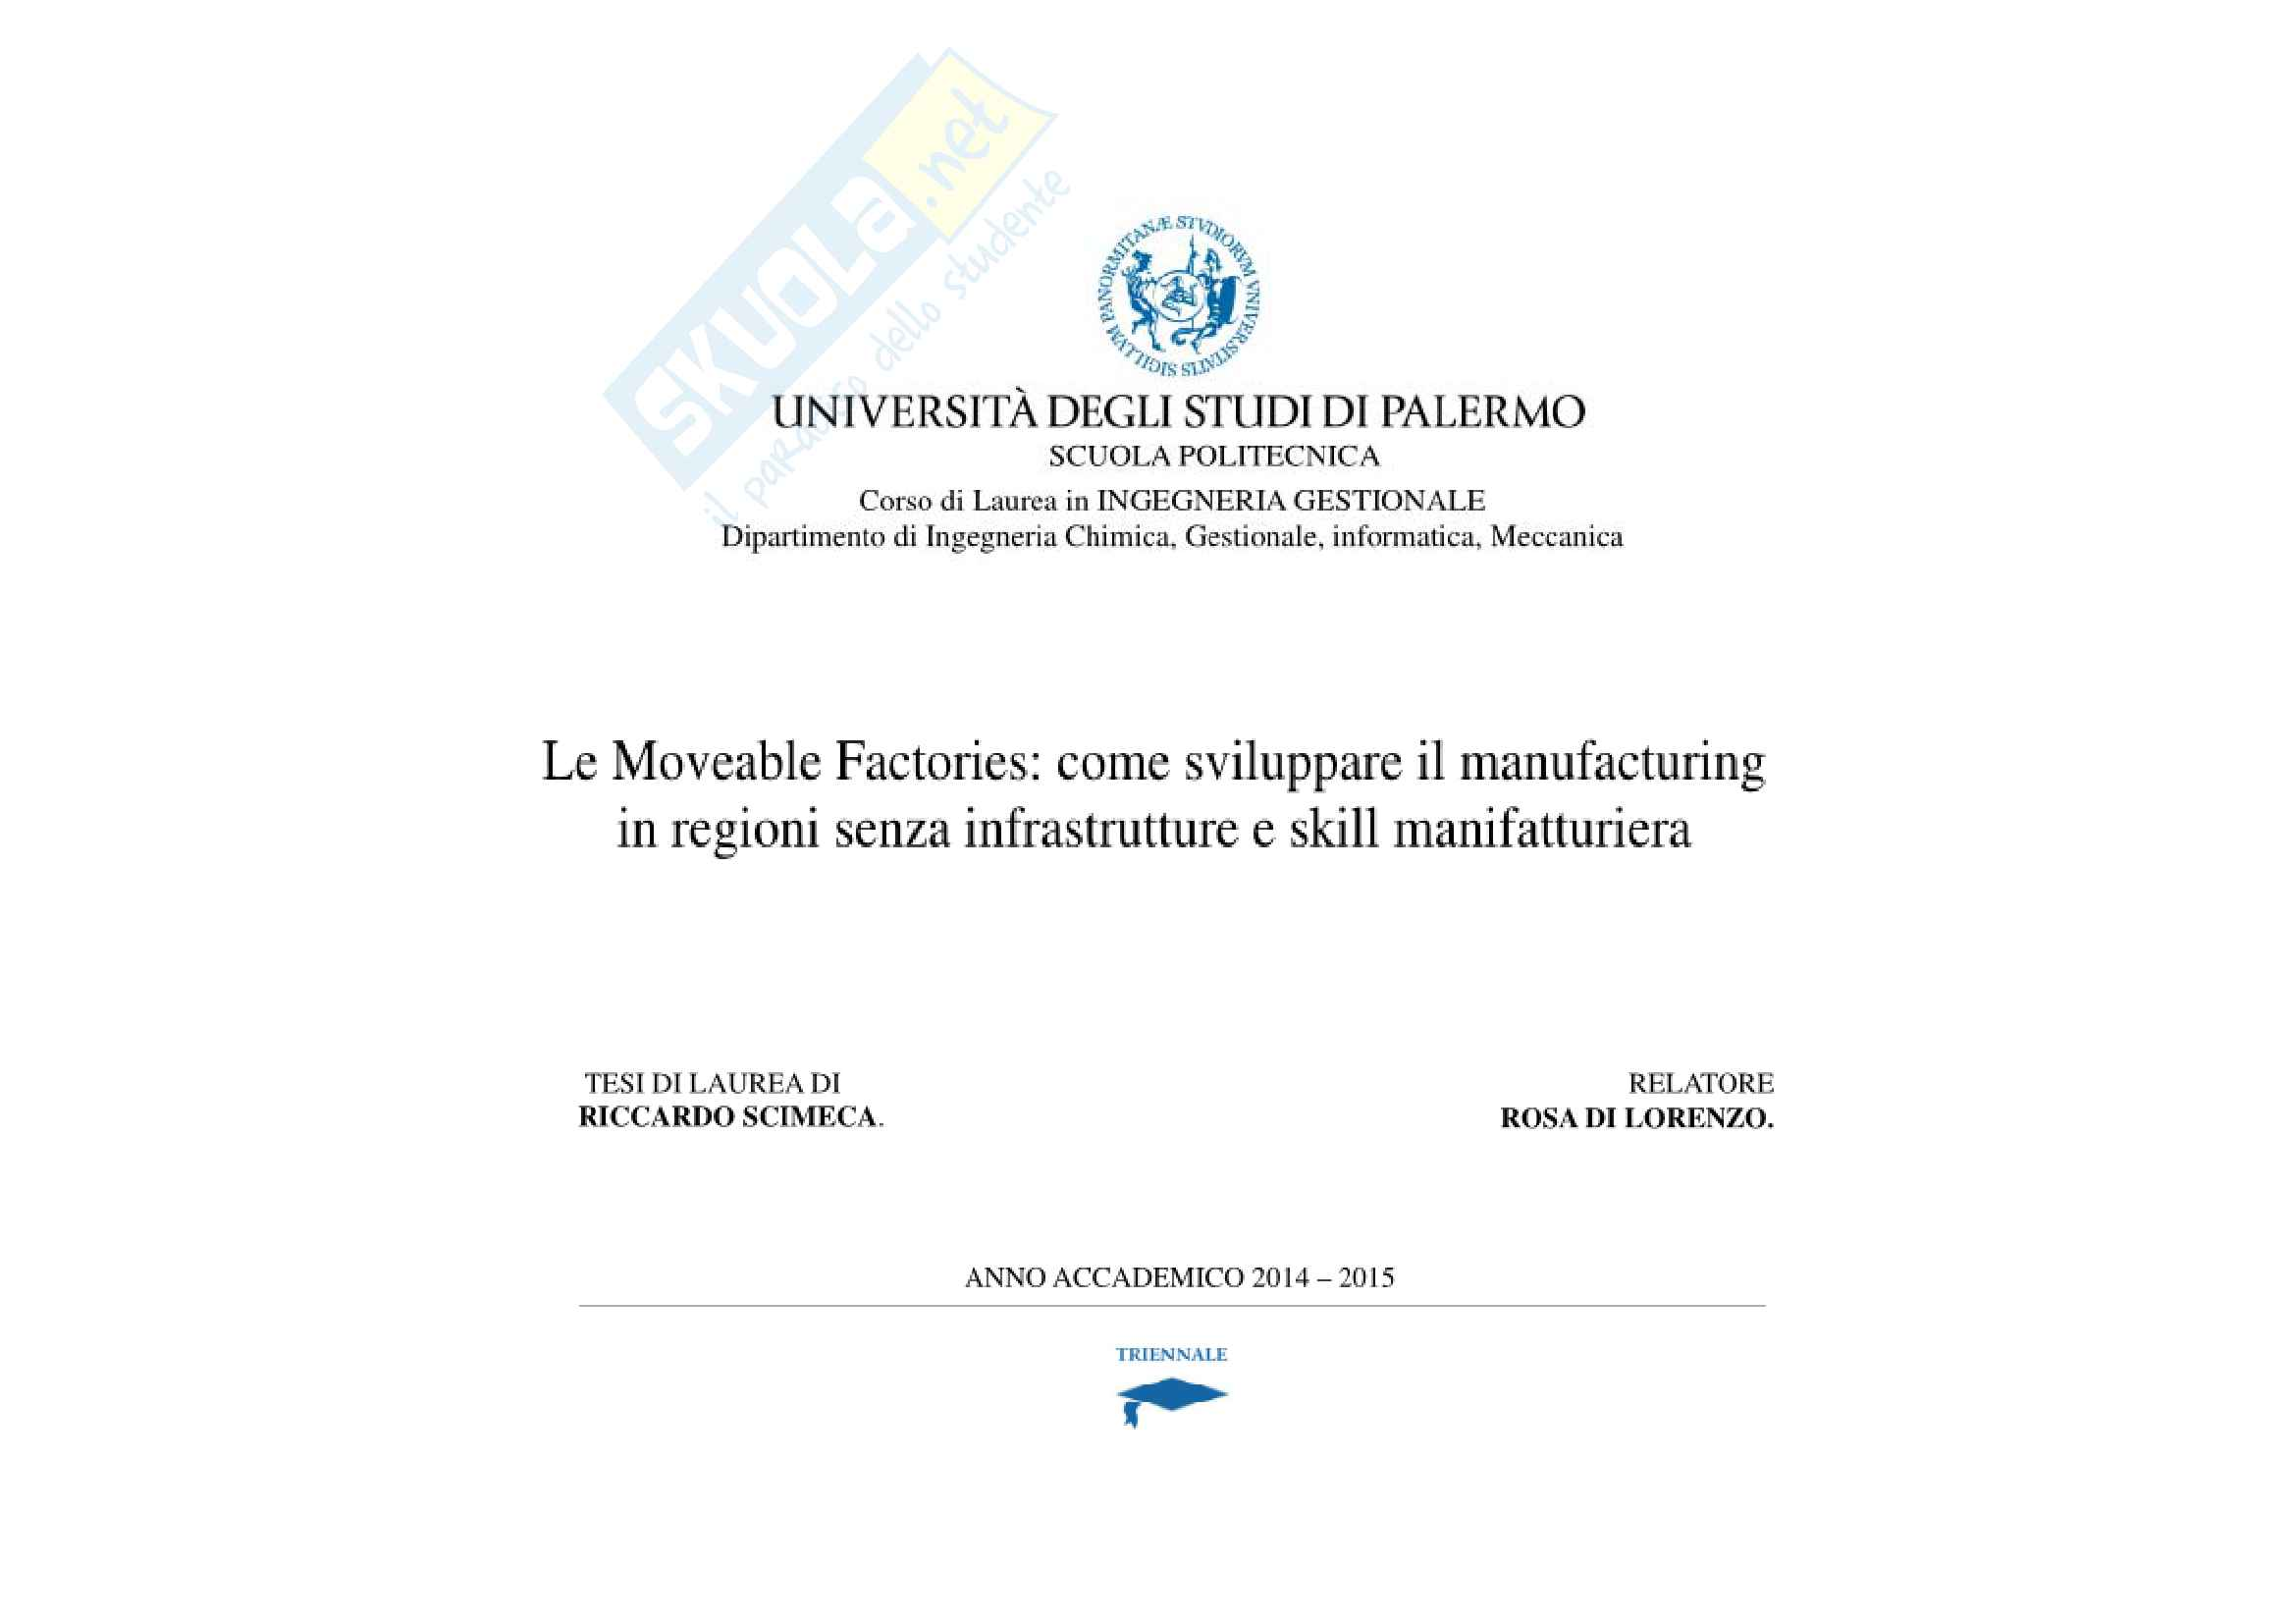 Presentazione tesi (Moveable factories)